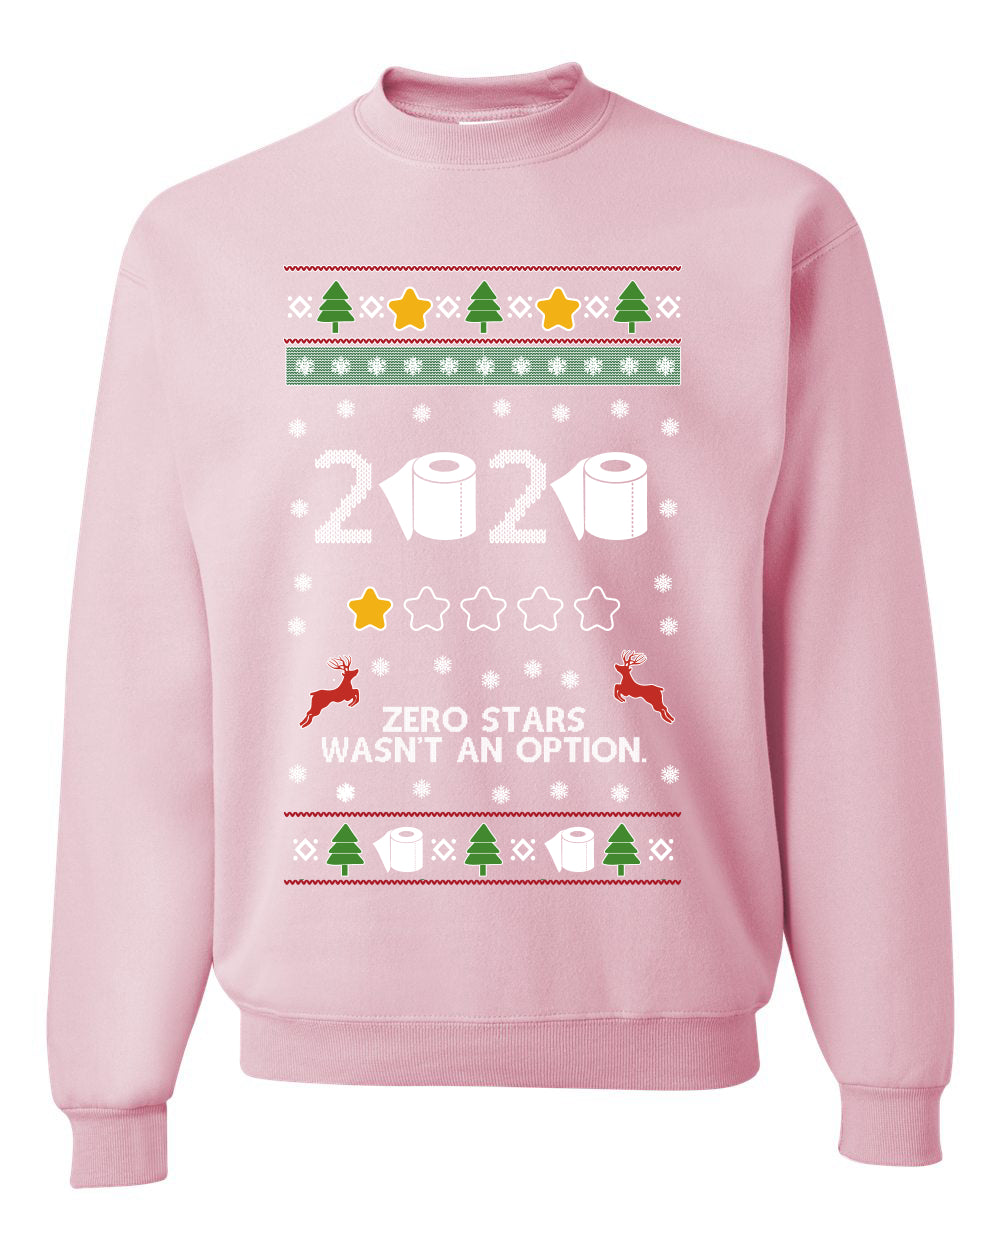 2020 Zero Stars Wasnt an Option Ugly Christmas Sweater Unisex Crewneck Graphic Sweatshirt